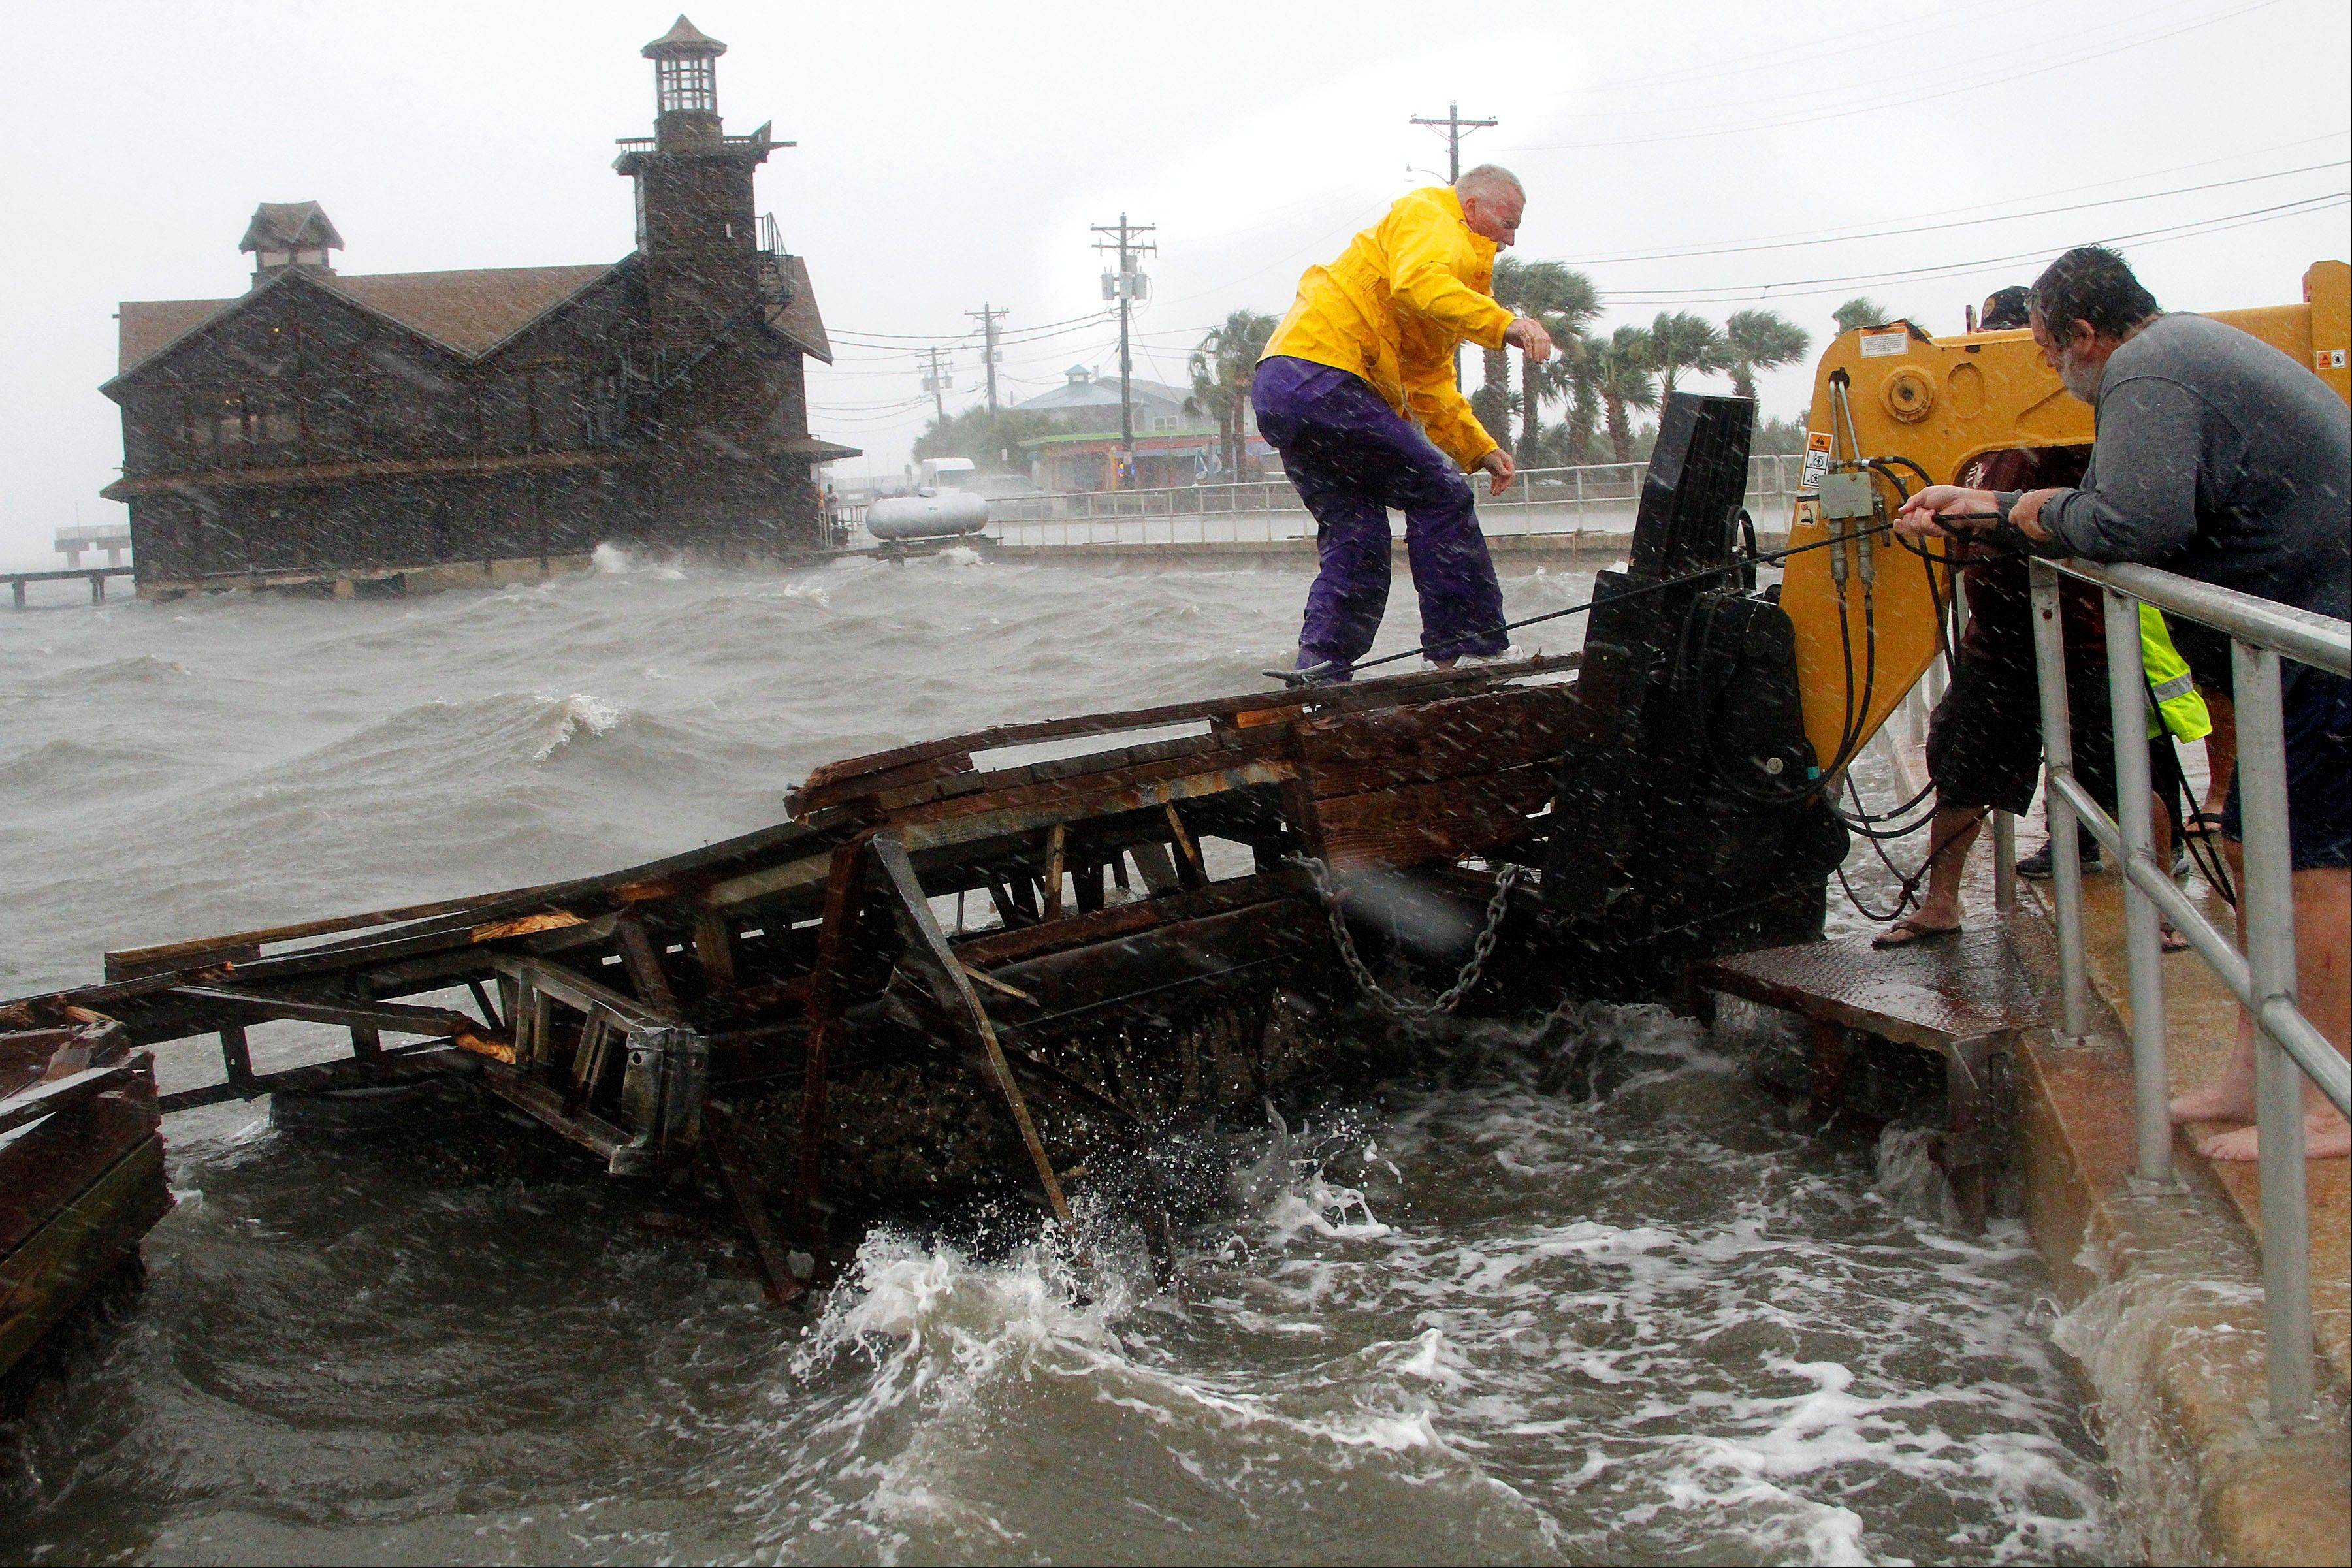 Cedar Key Fire Chief Robert Robinson walks on a section of a floating dock that broke loose during a storm surge from Tropical Storm Debby in Cedar Key, Fla., on Sunday, June 24, 2012. Slow-moving Tropical Storm Debby's outer bands lashed Florida with rain and kicked up rough surf off Alabama on Sunday, prompting storm warnings for those states.